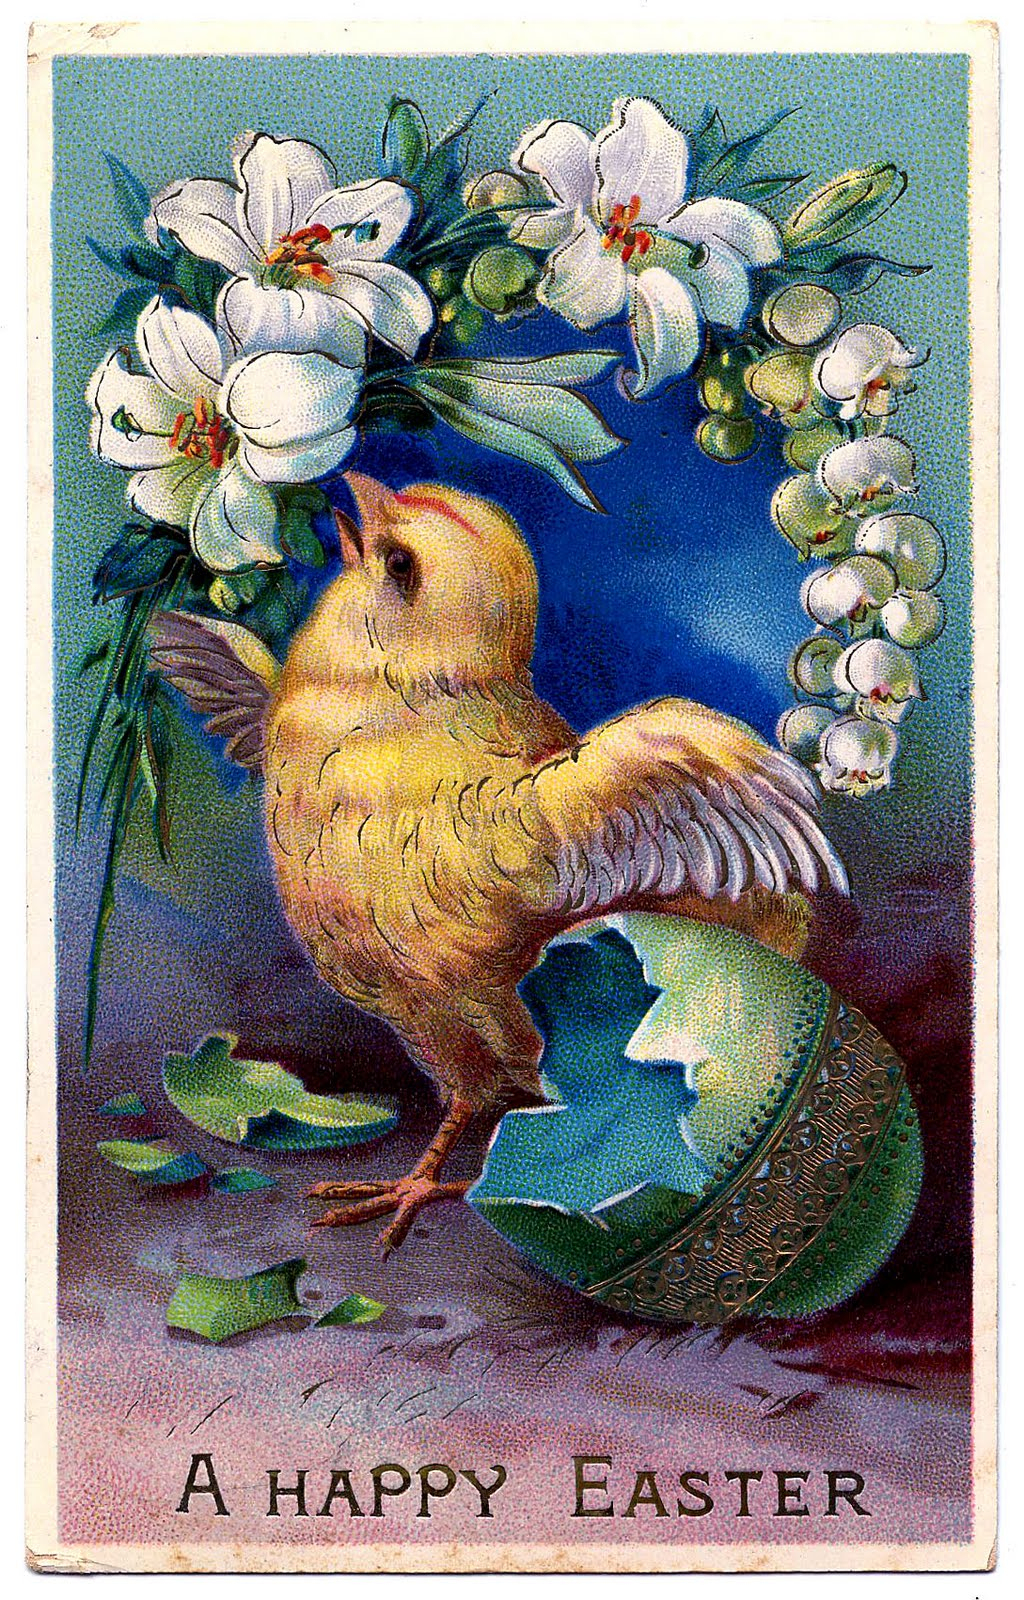 Vintage Easter Clip Art - Sweet Baby Chick With Egg - The Graphics Fairy - Free Printable Vintage Easter Images